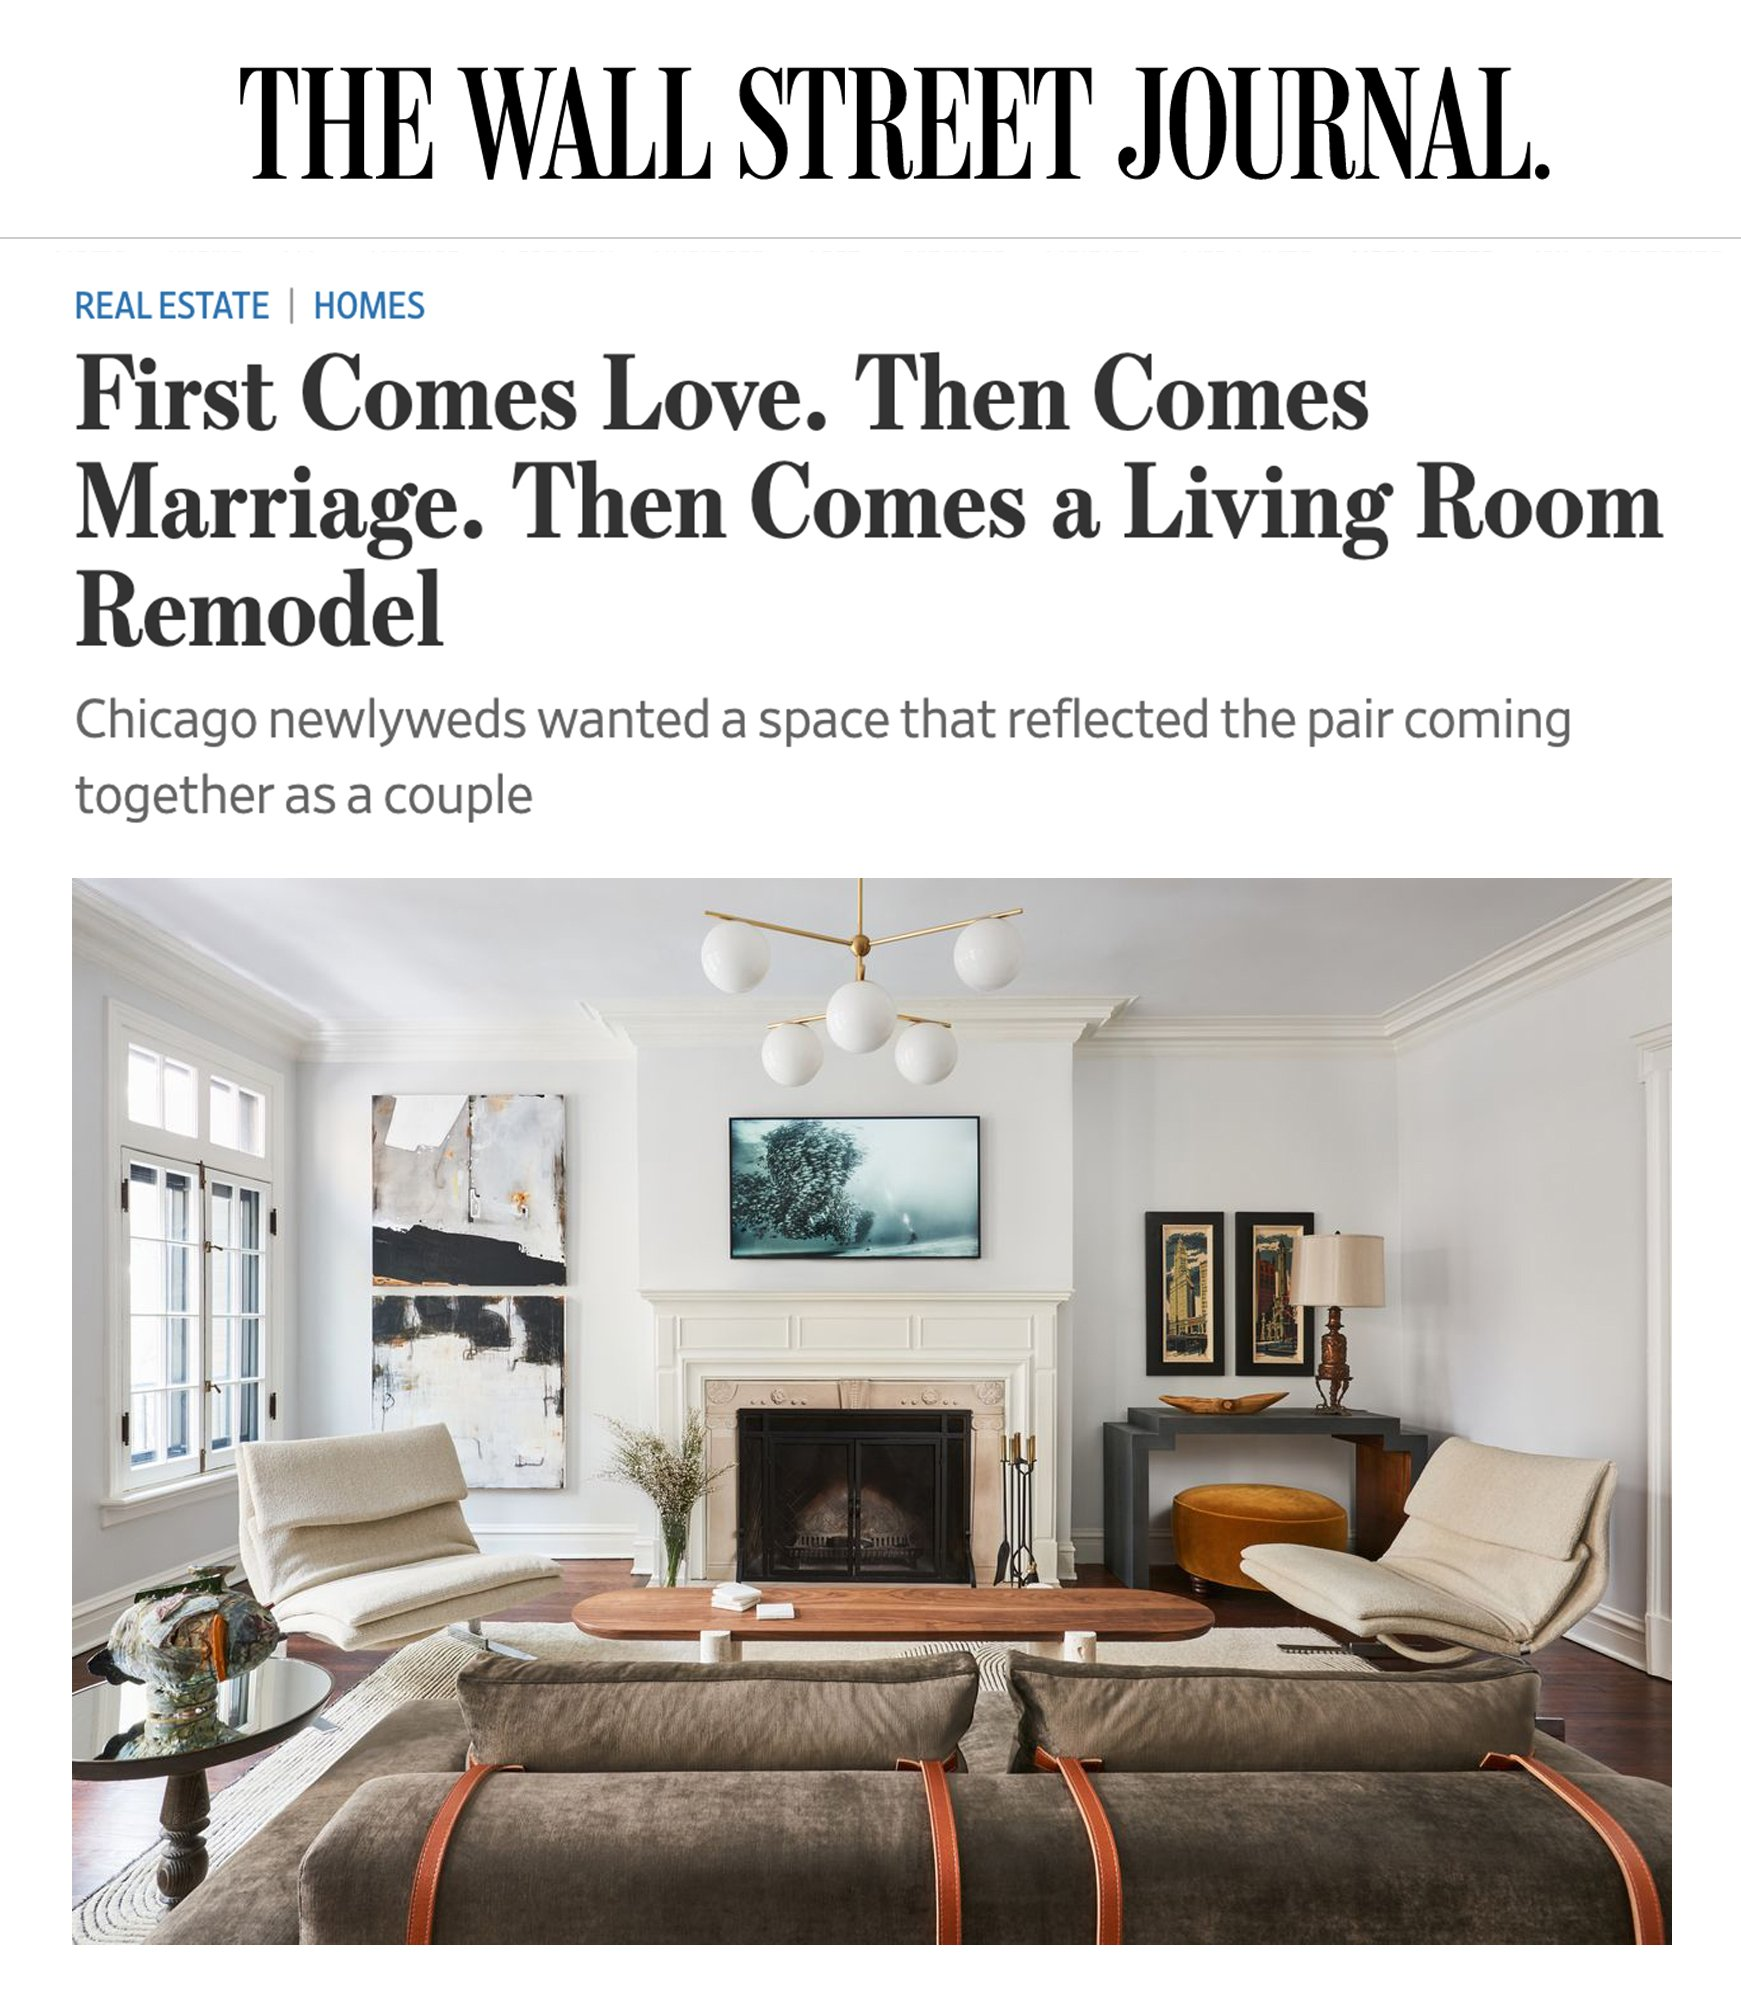 wsj-cover